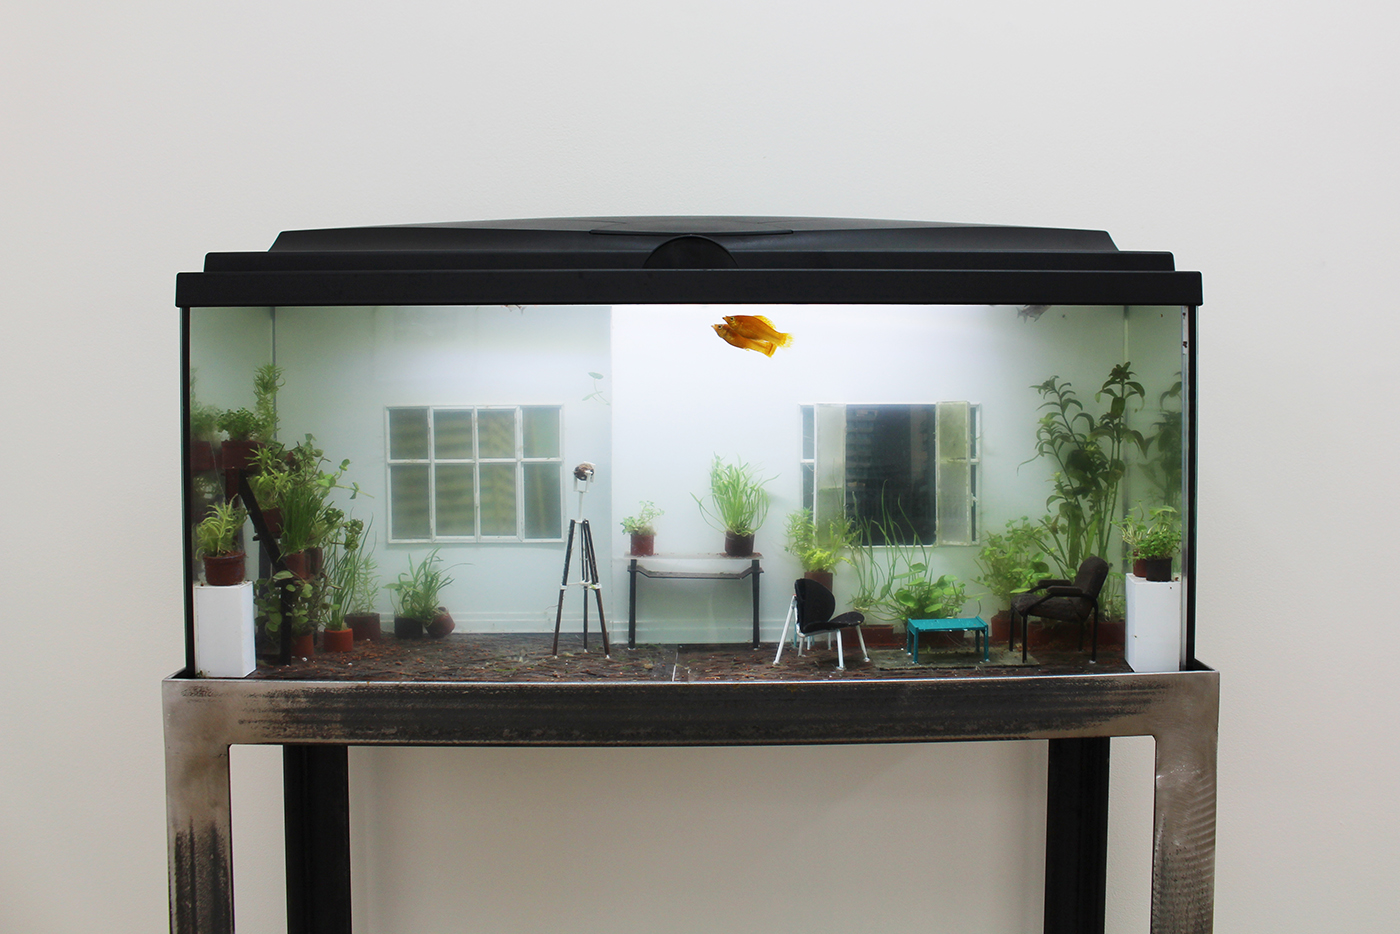 Rodrigo Arteaga, Öekologie, 2016, Aquarium with live fishes, live plants and miniature elements, 80 x 30 x 40